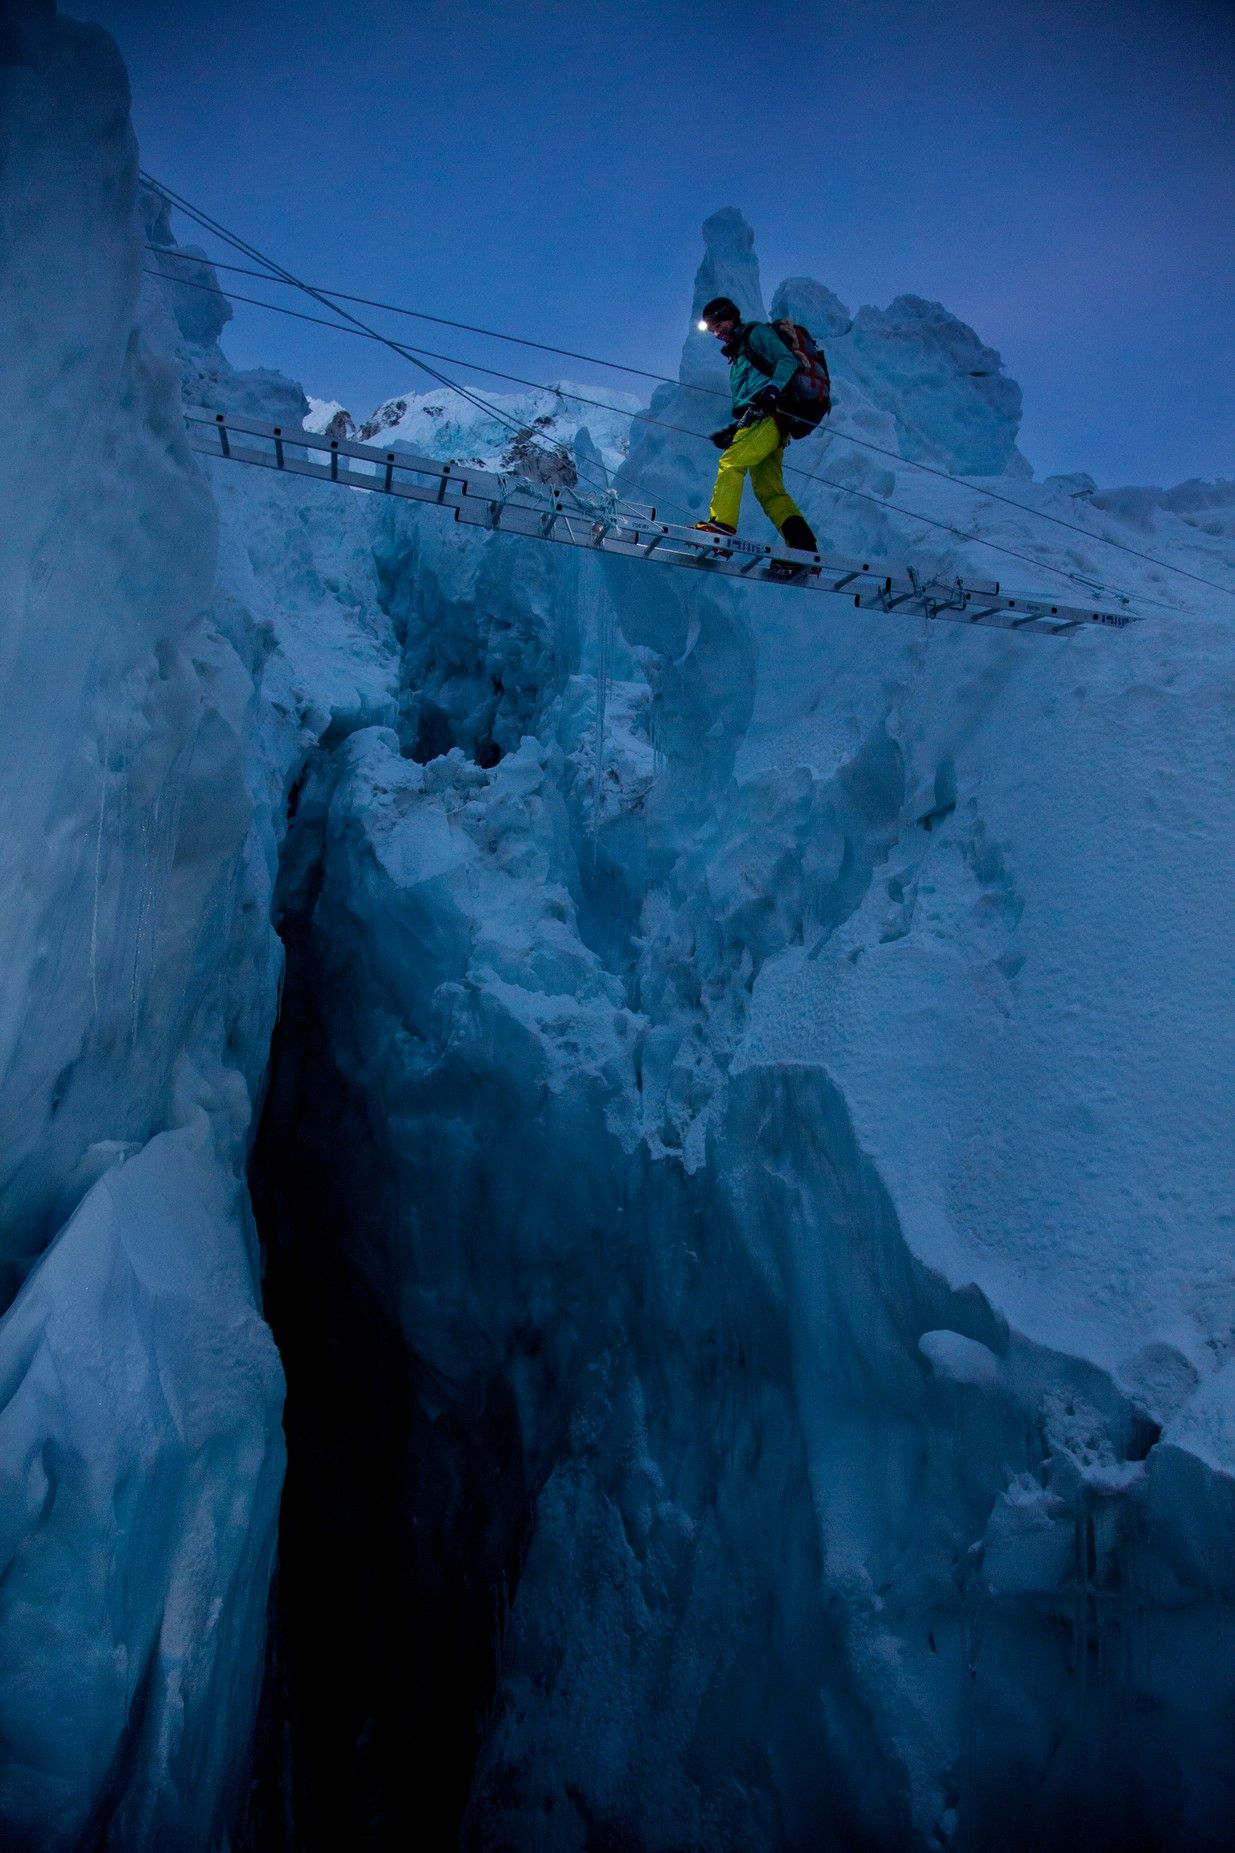 A member of the Perpetual Planet Extreme Expedition at Khumbu Icefall at Mount Everest